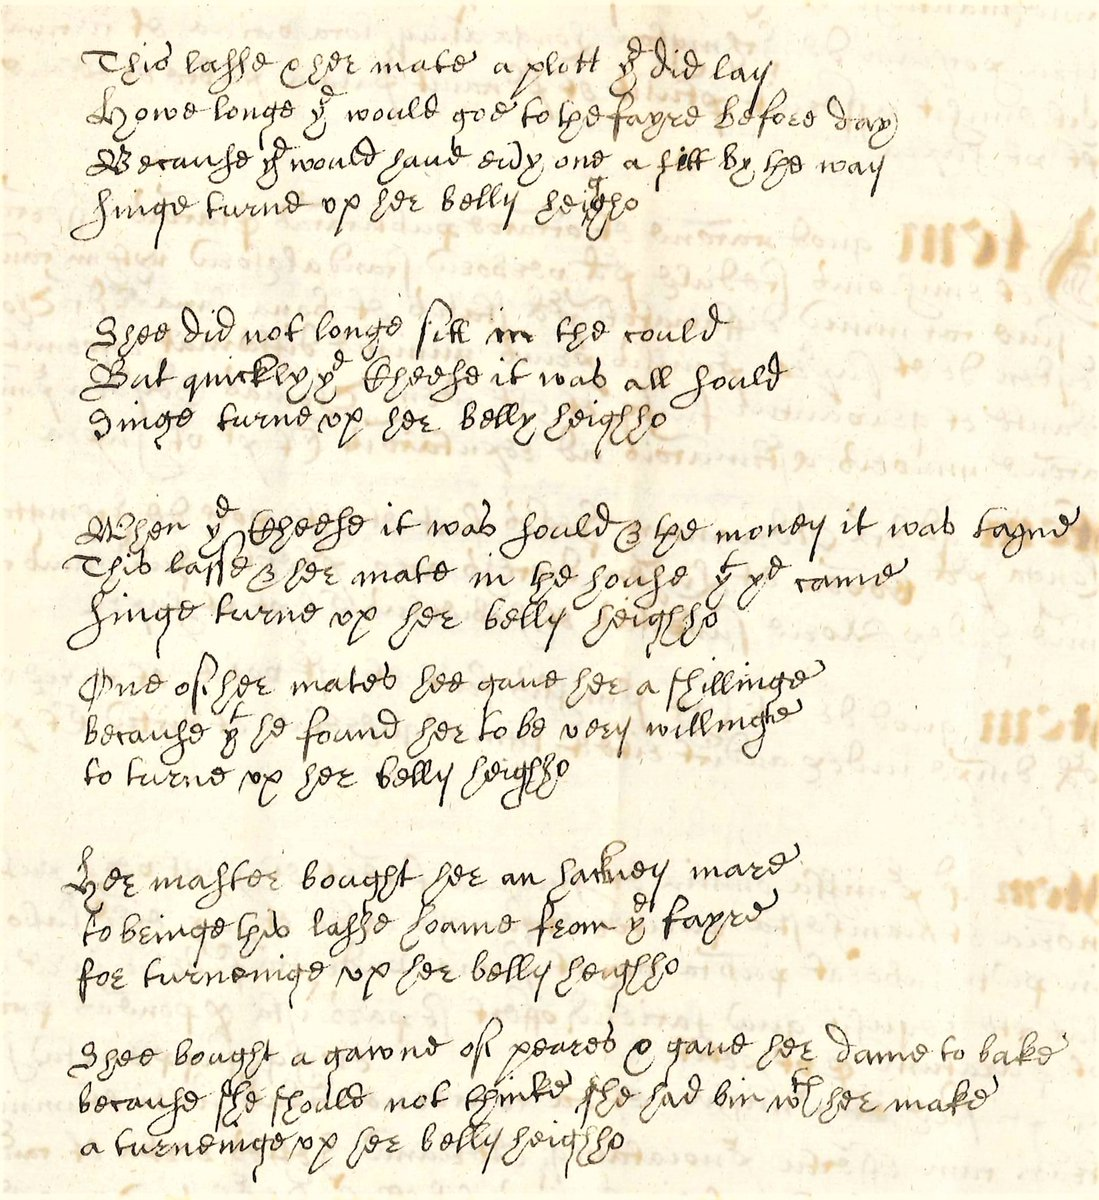 This lasse and her mate a plot they did lay. How long they would goe to the fayre before day Because they would have evy one a fitt by the way Singe turne up her belly heigh ho ... A libellous ballad from 1628 in @ArchandHeritage: lichfieldbawdycourts.wordpress.com/2021/01/15/hei…